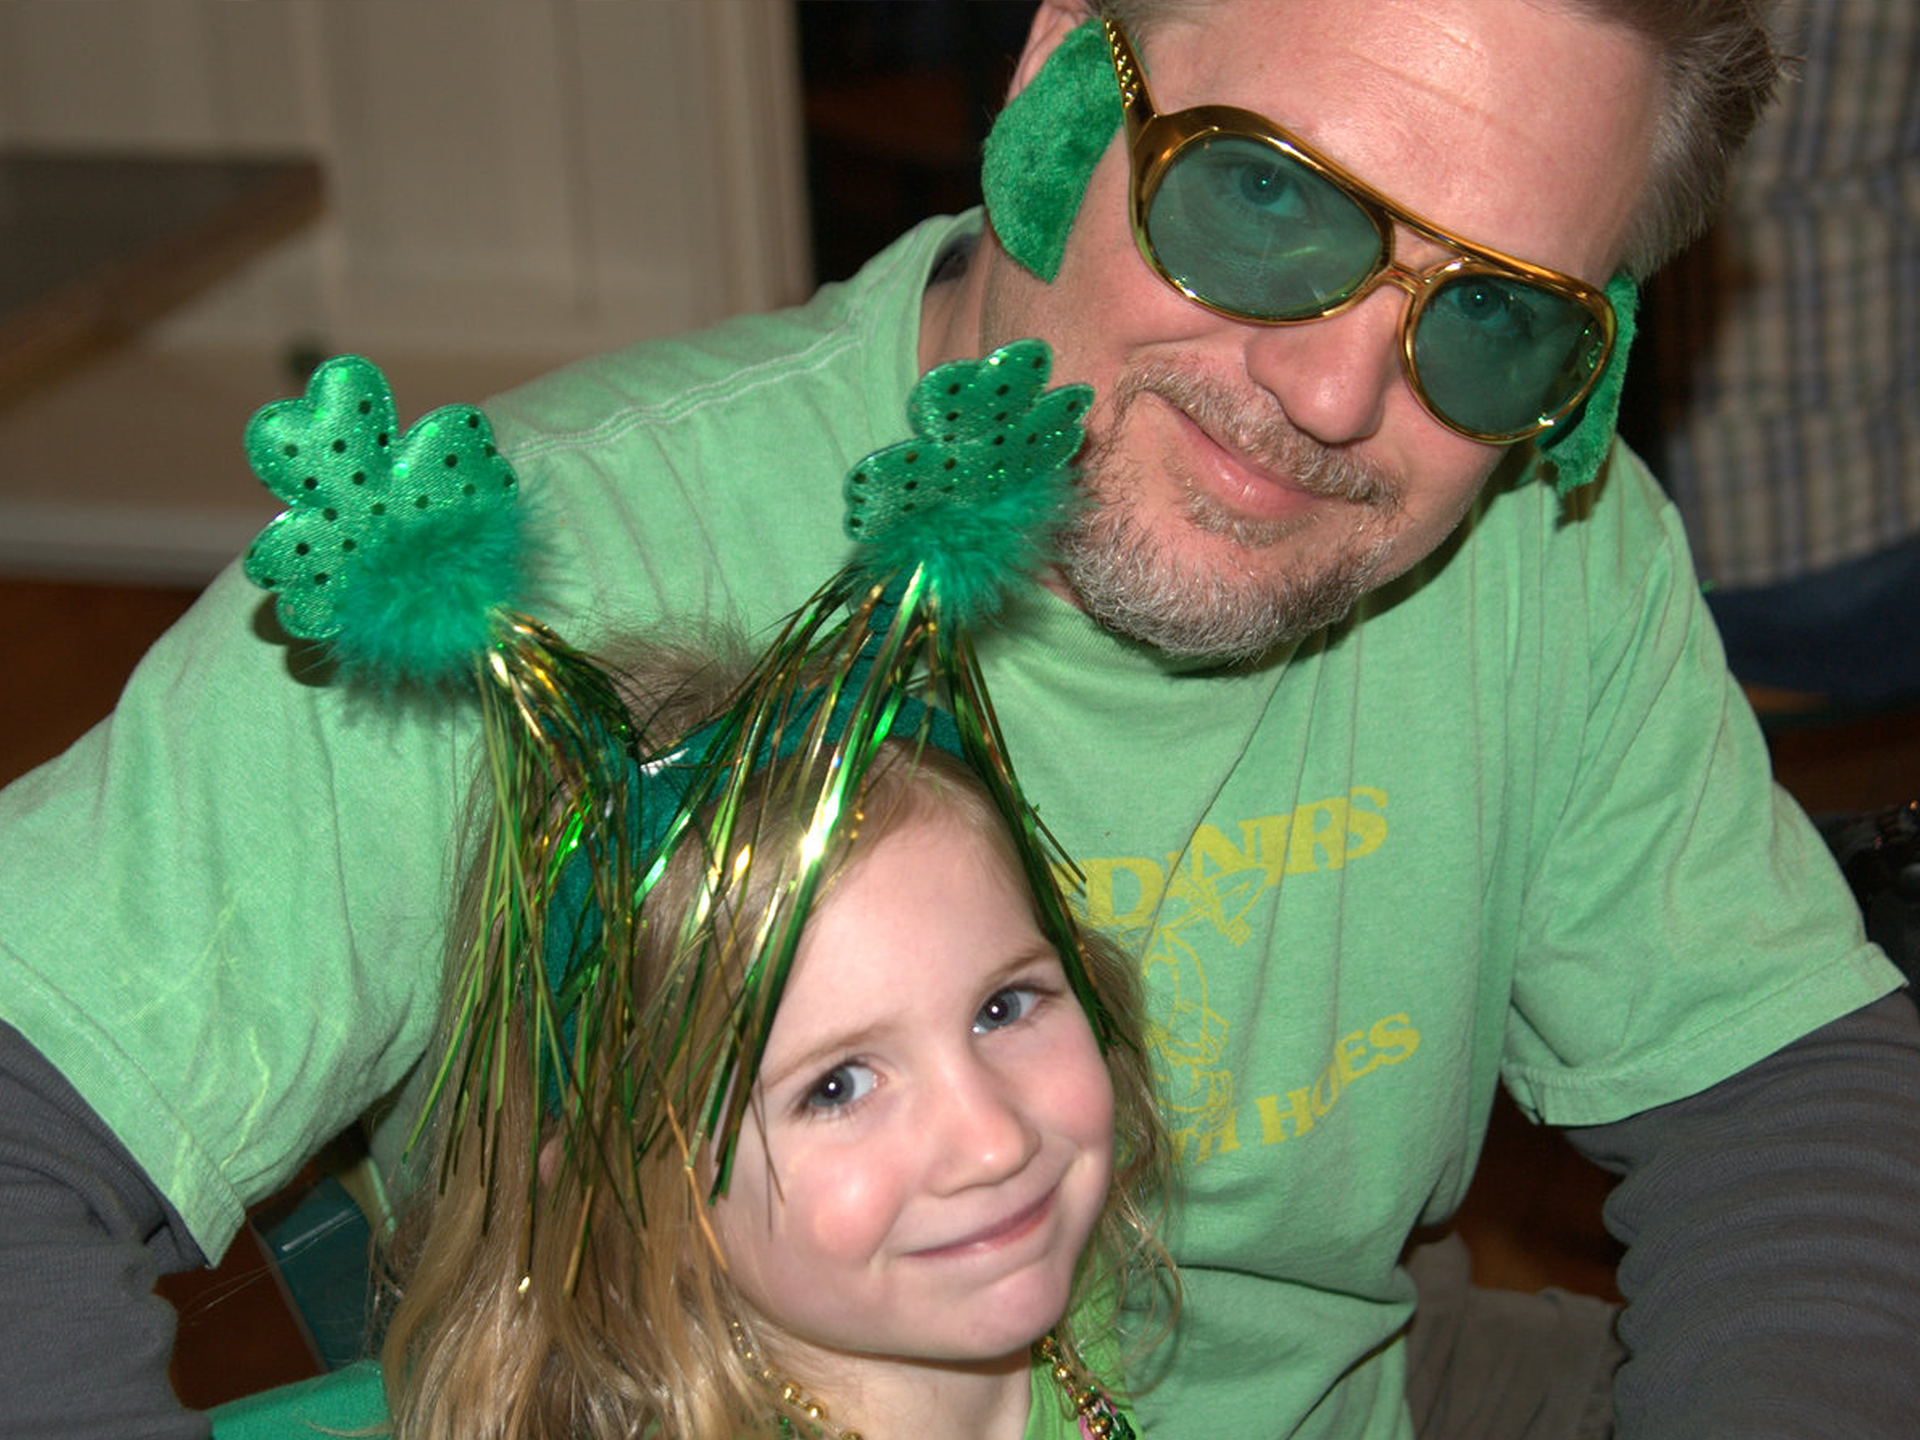 Father and daughter on St. Patricks' Day